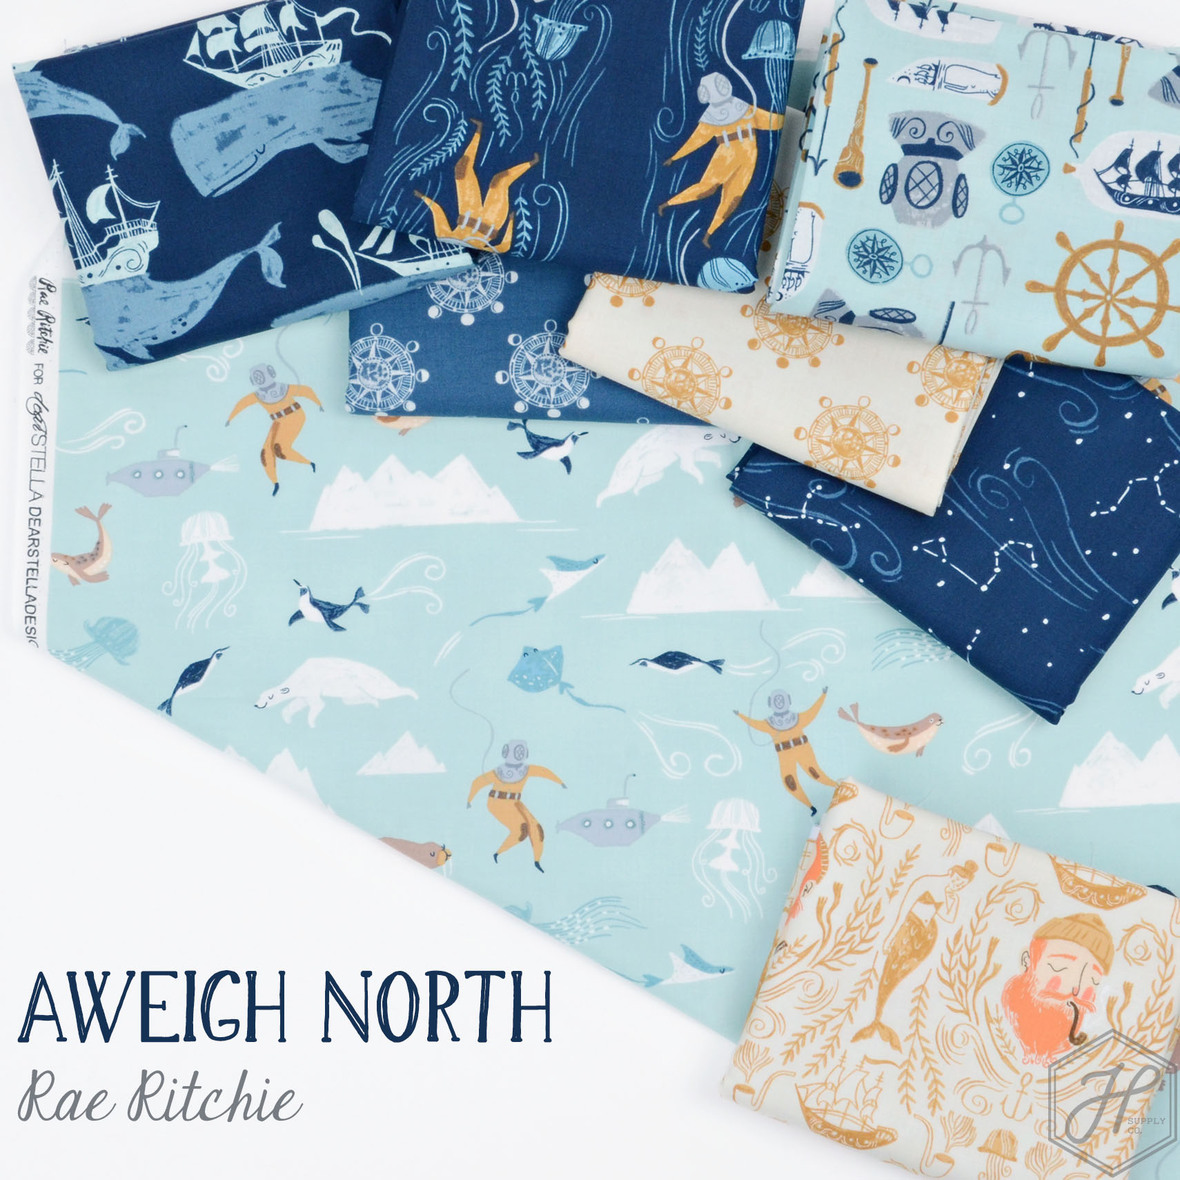 Aweigh North Fabric Poster b